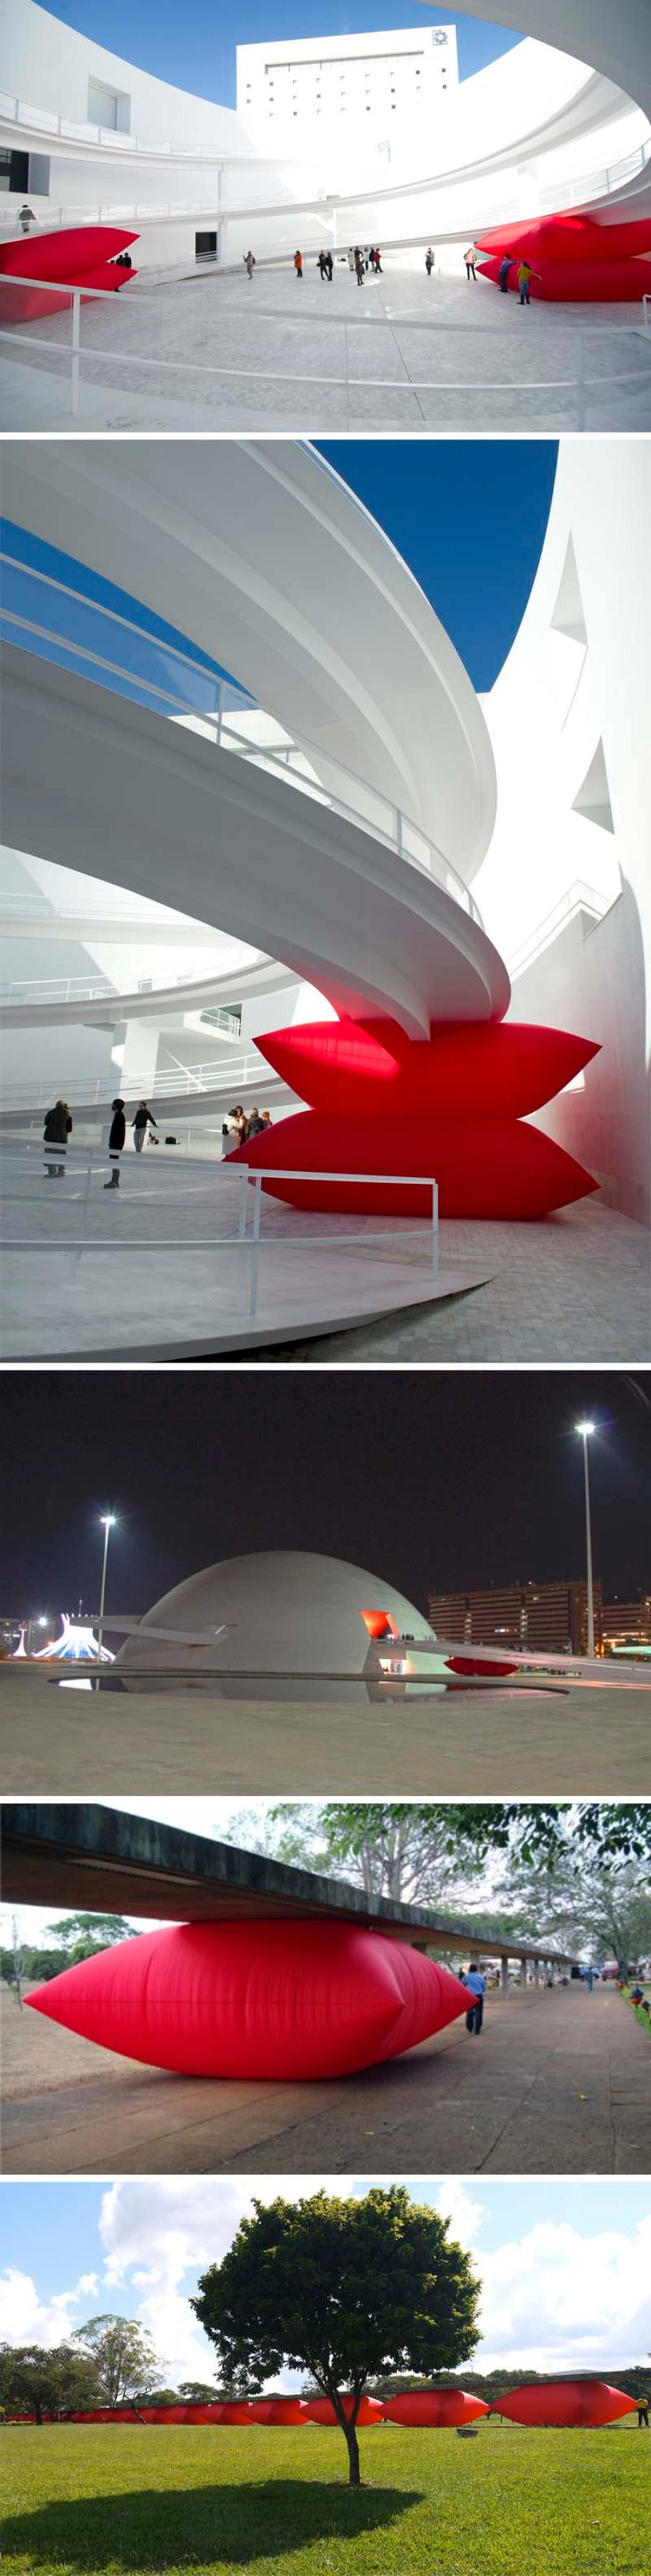 Inflatable art installation, AiOP NYC, Geraldo Zamproni's large red pillow, contemporary brazilian sculpture and installations